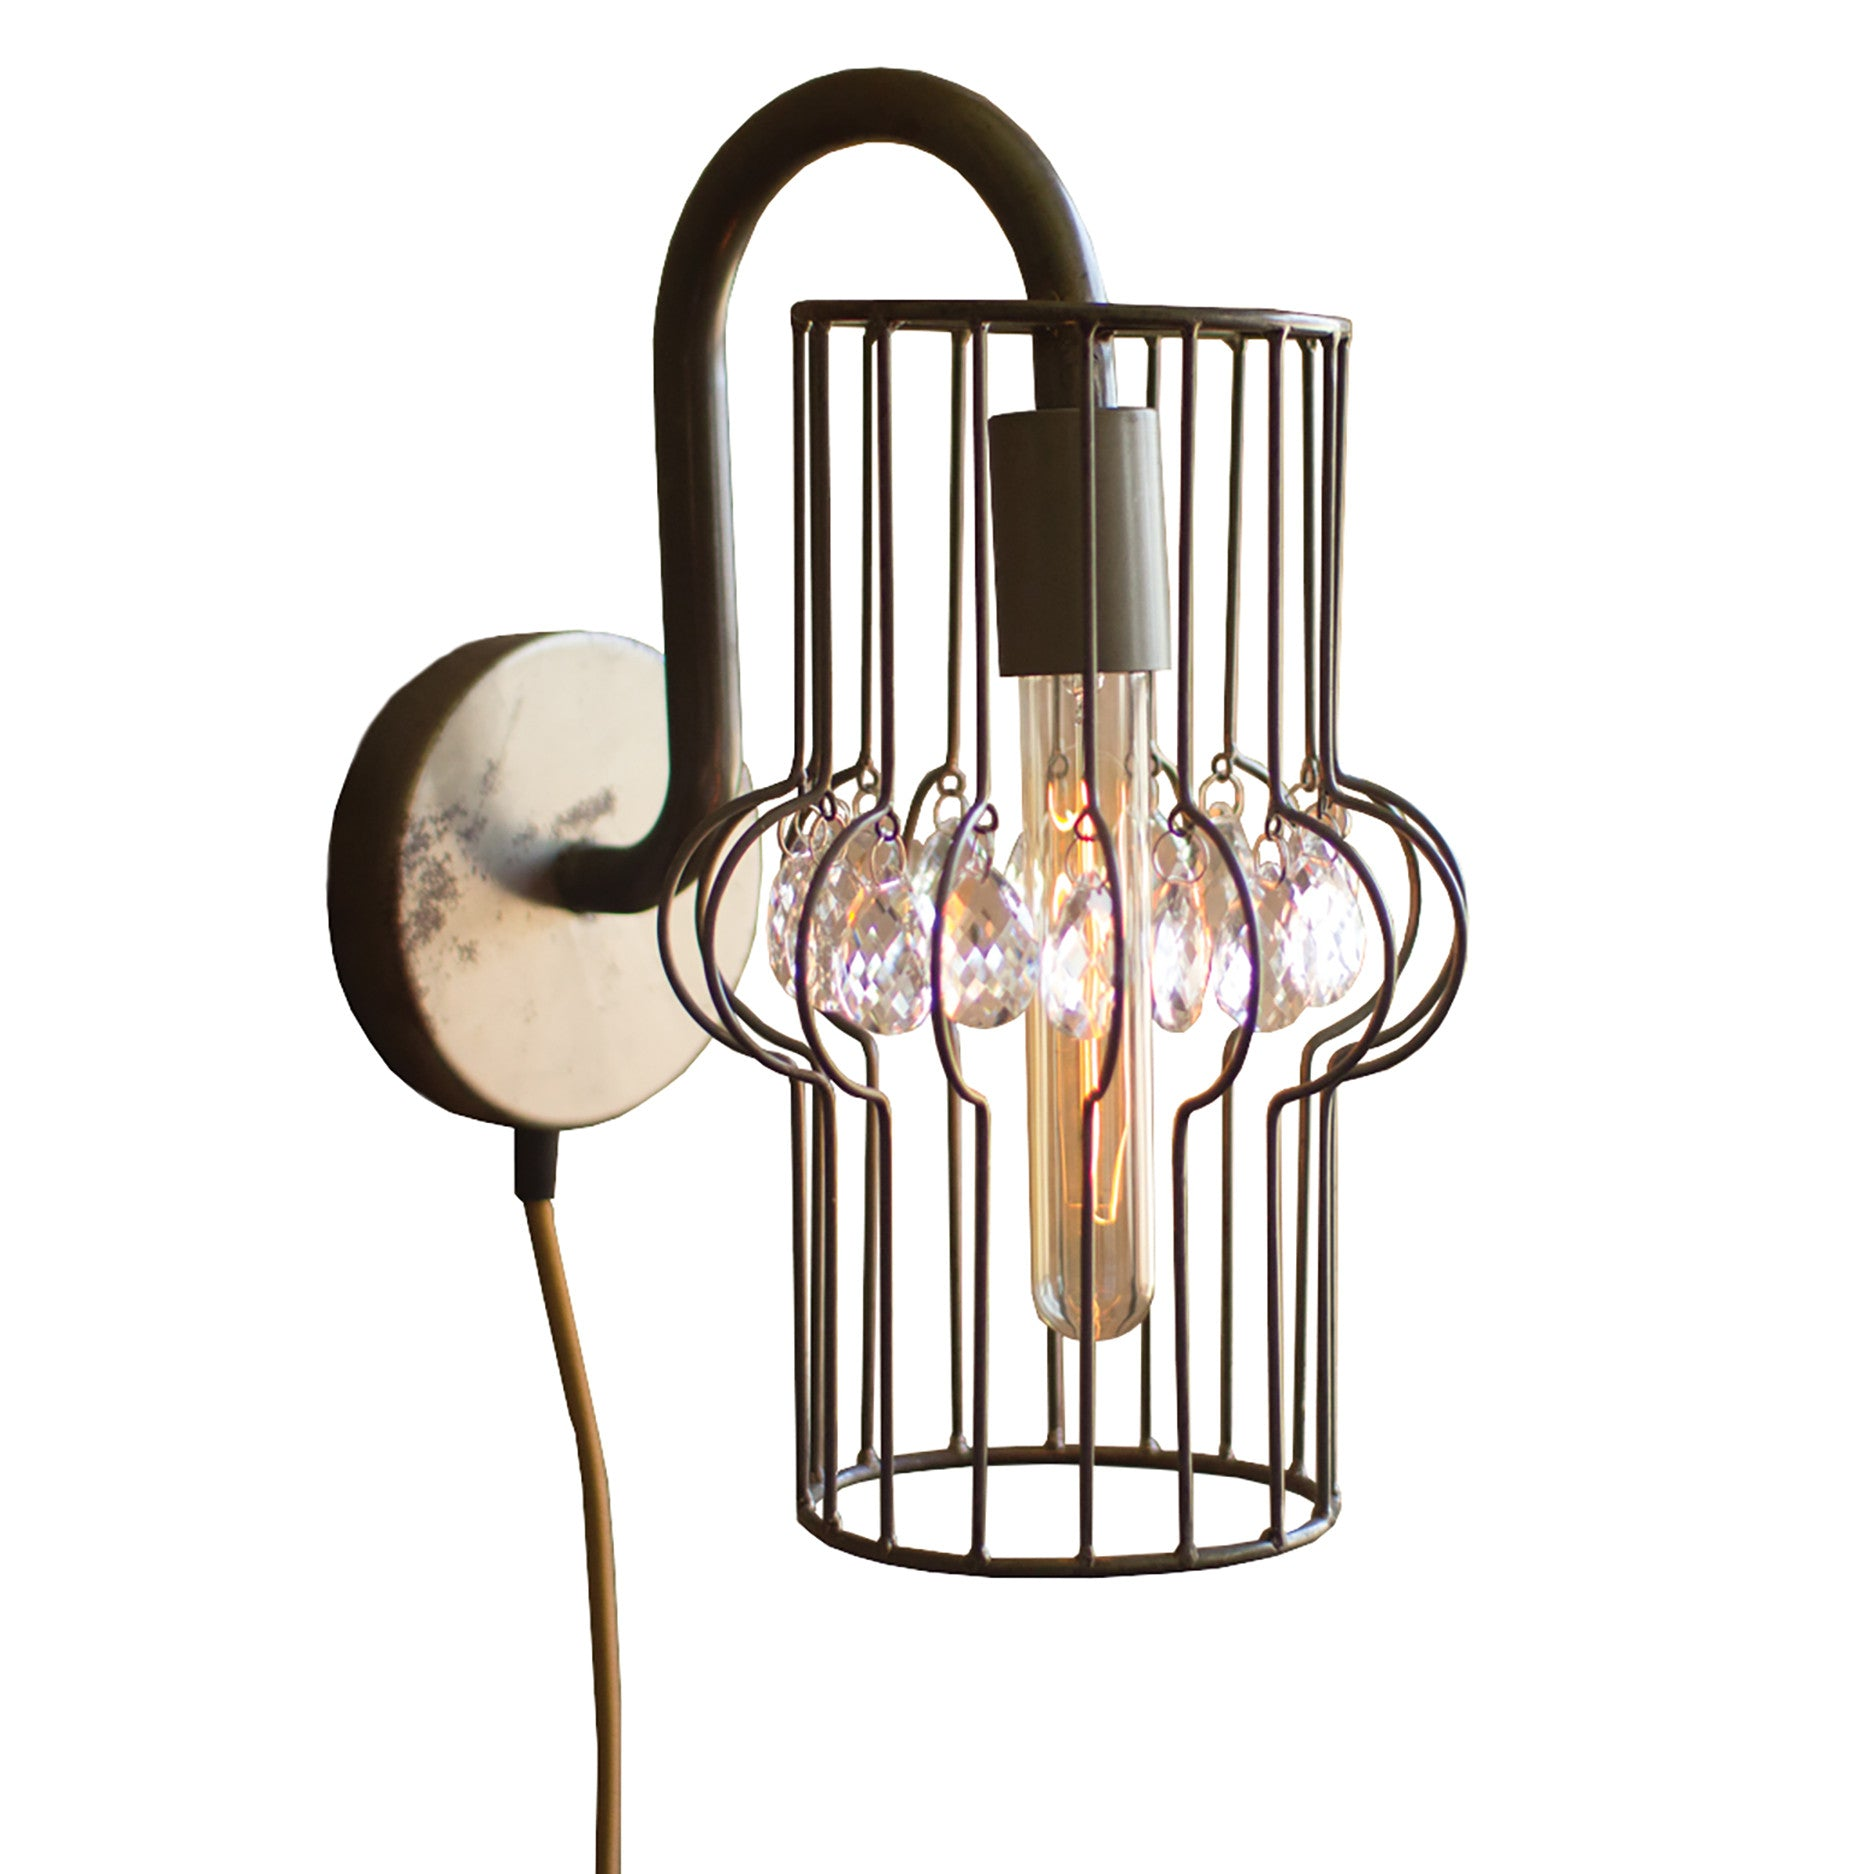 Industrial Modern Plug In Wall Sconce With Gems - Woodwaves